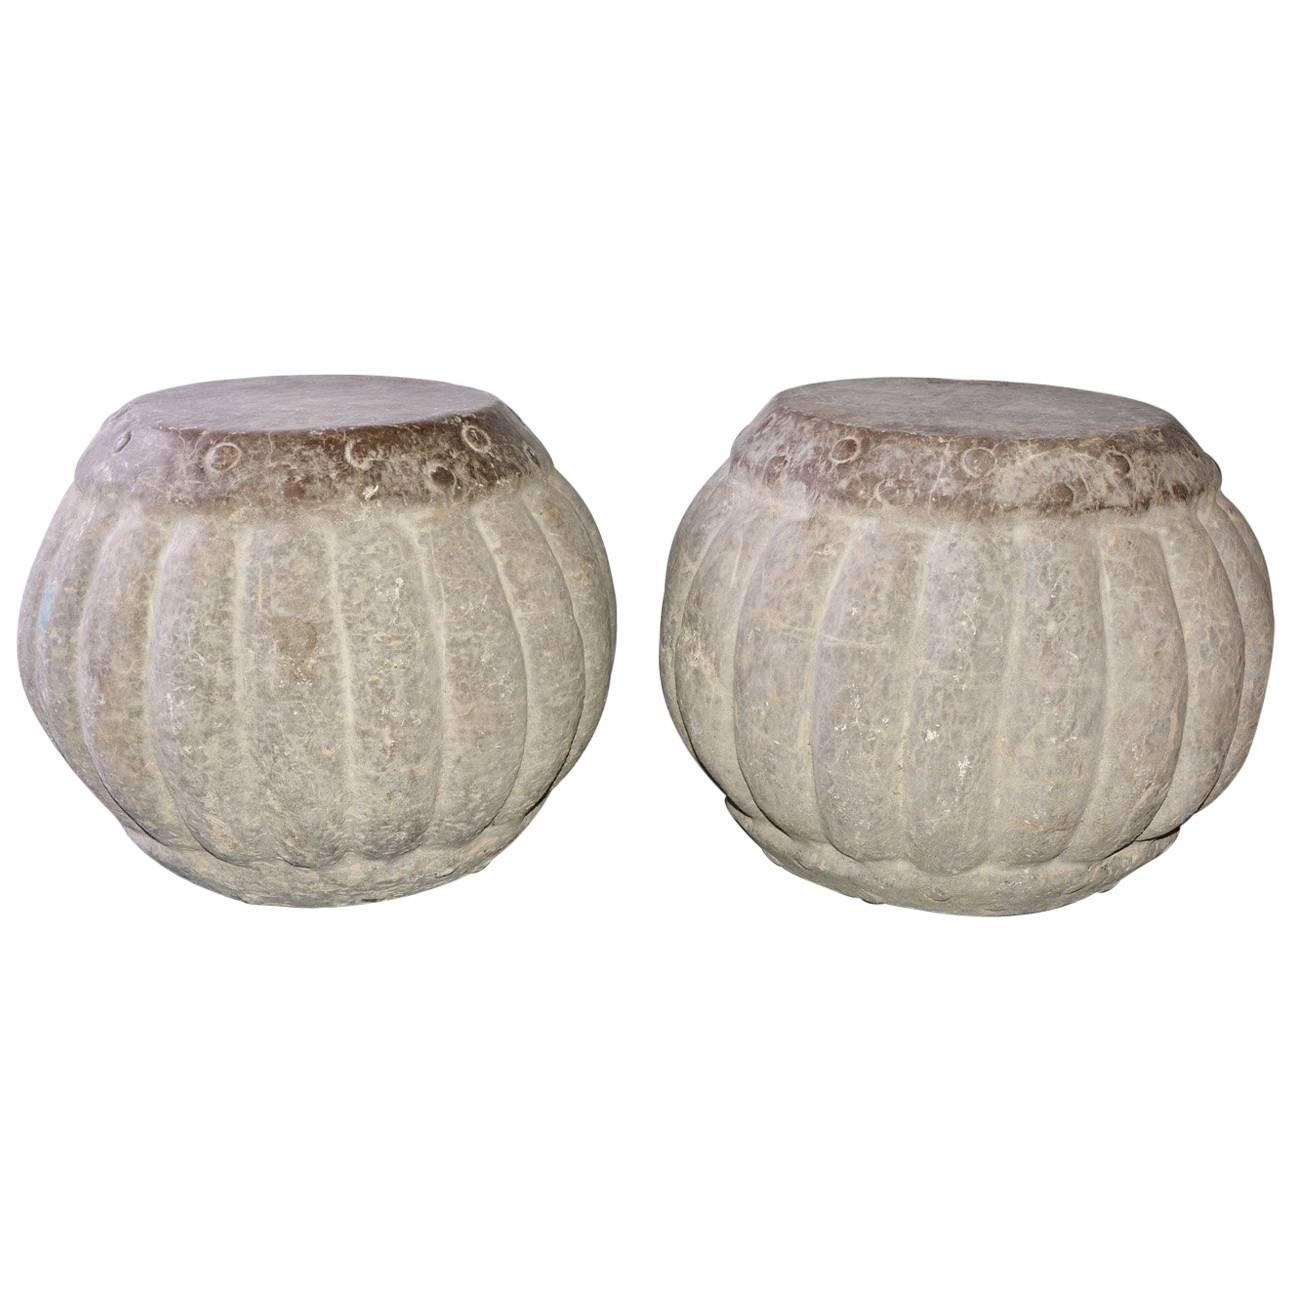 Carved Stone Garden Stools Or Tables, Pair For Sale